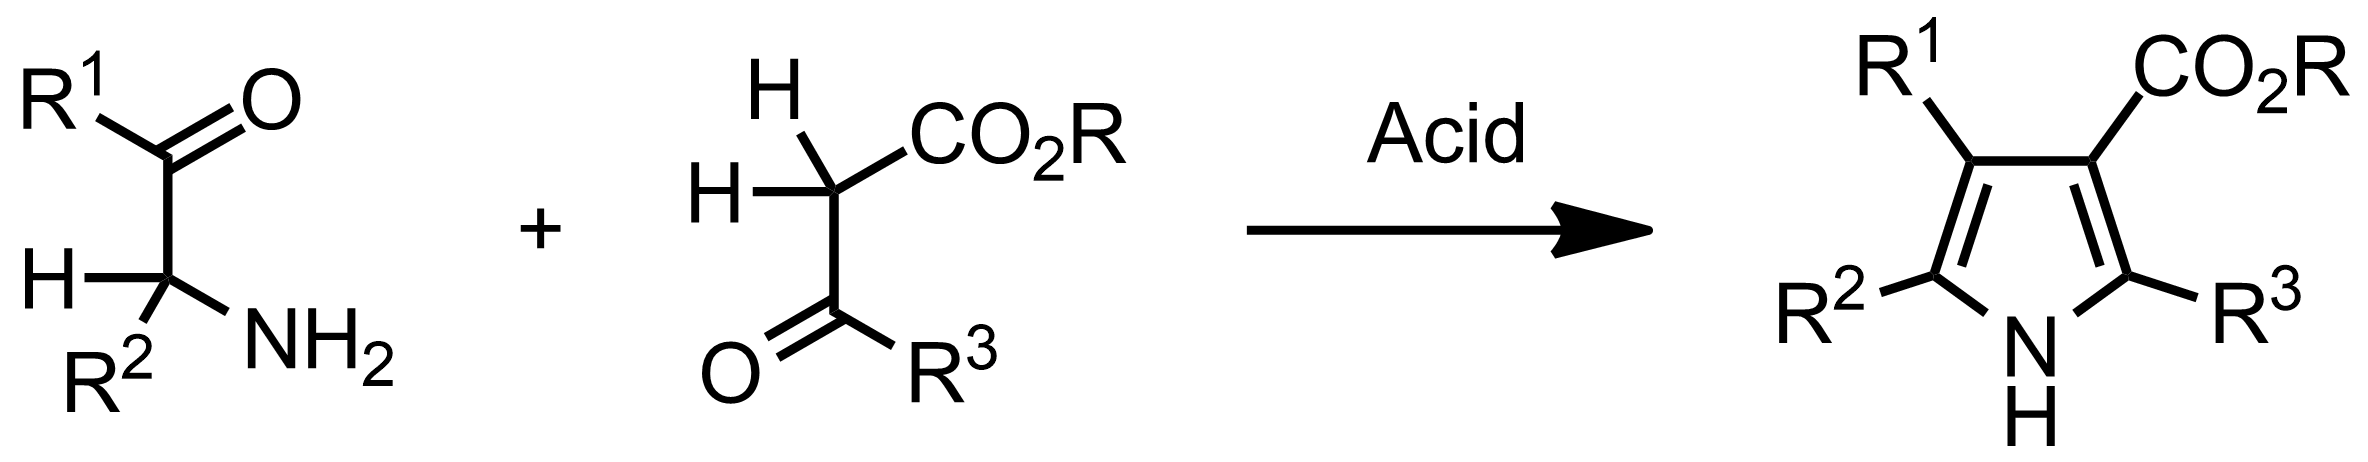 Schematic representation of the Knorr Pyrrole Synthesis.